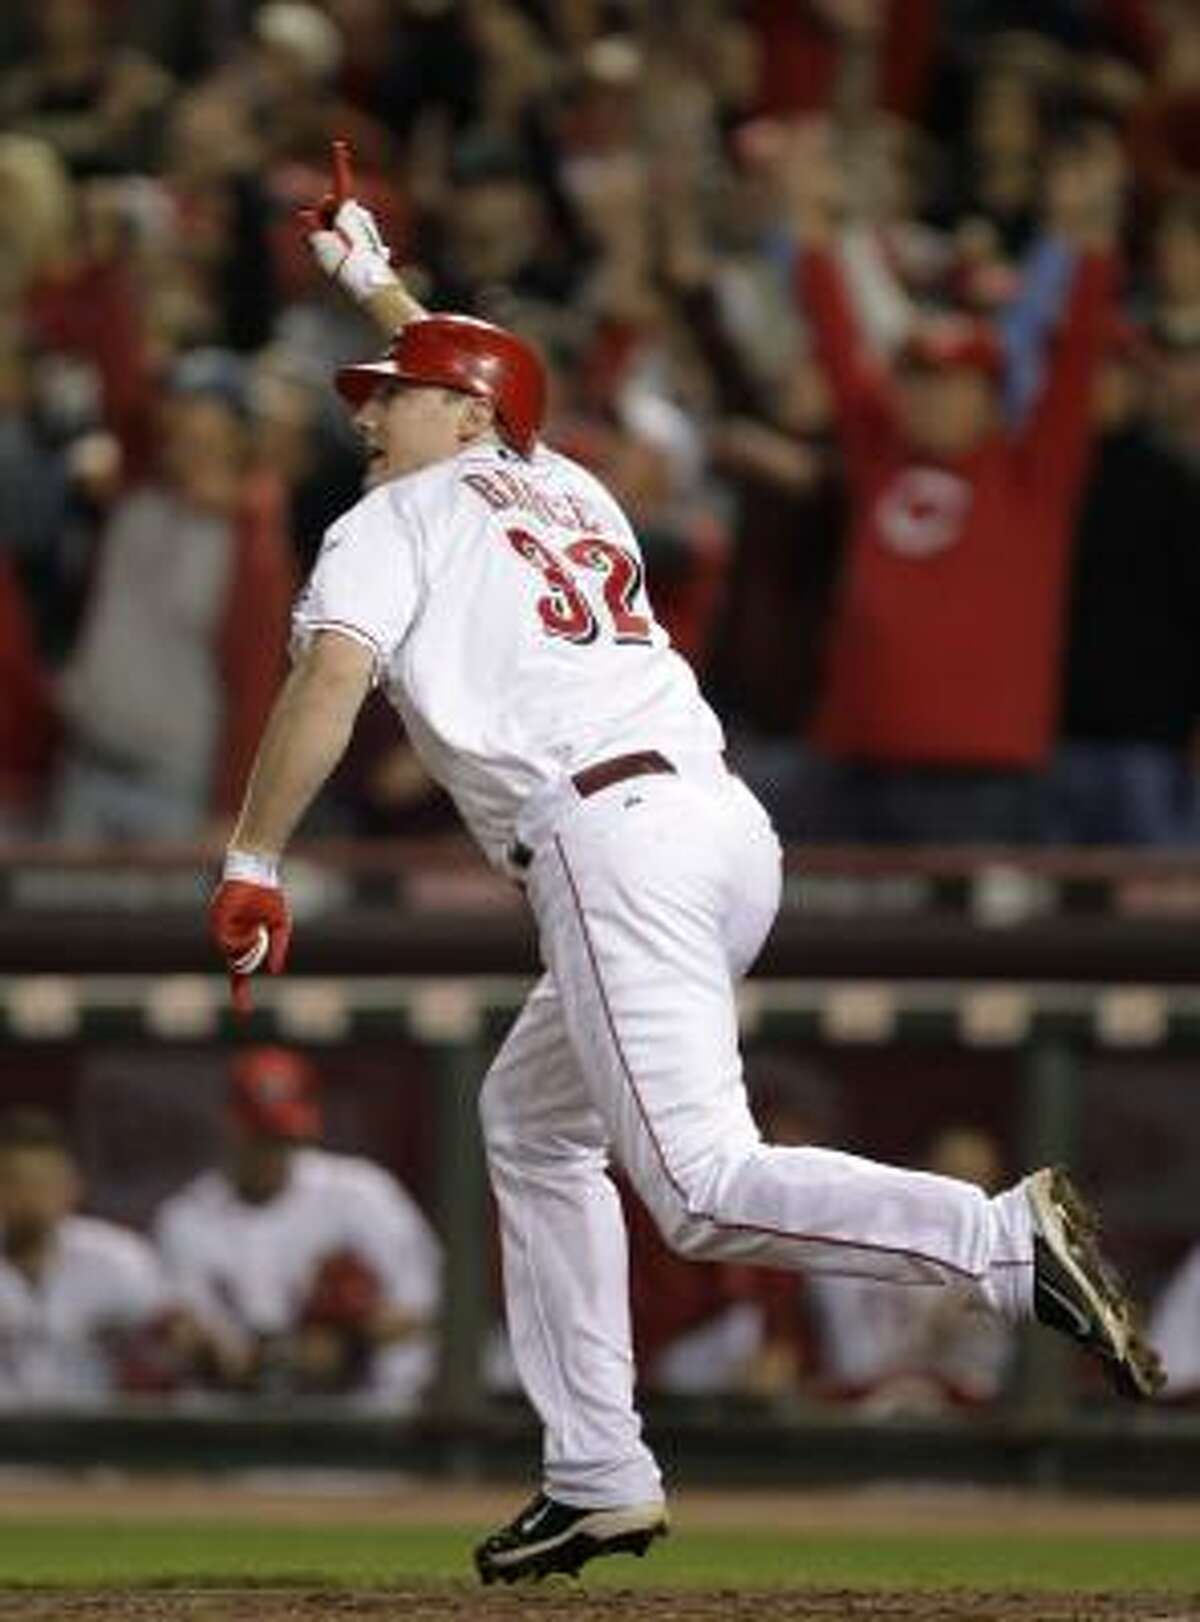 Cincinnati Reds' Jay Bruce reacts after hitting a home run off Houston Astros relief pitcher Tim Byrdak in the ninth inning of a baseball game Tuesday, Sept. 28, 2010, in Cincinnati. Cincinnati clinched the NL Central with a 3-2 win.